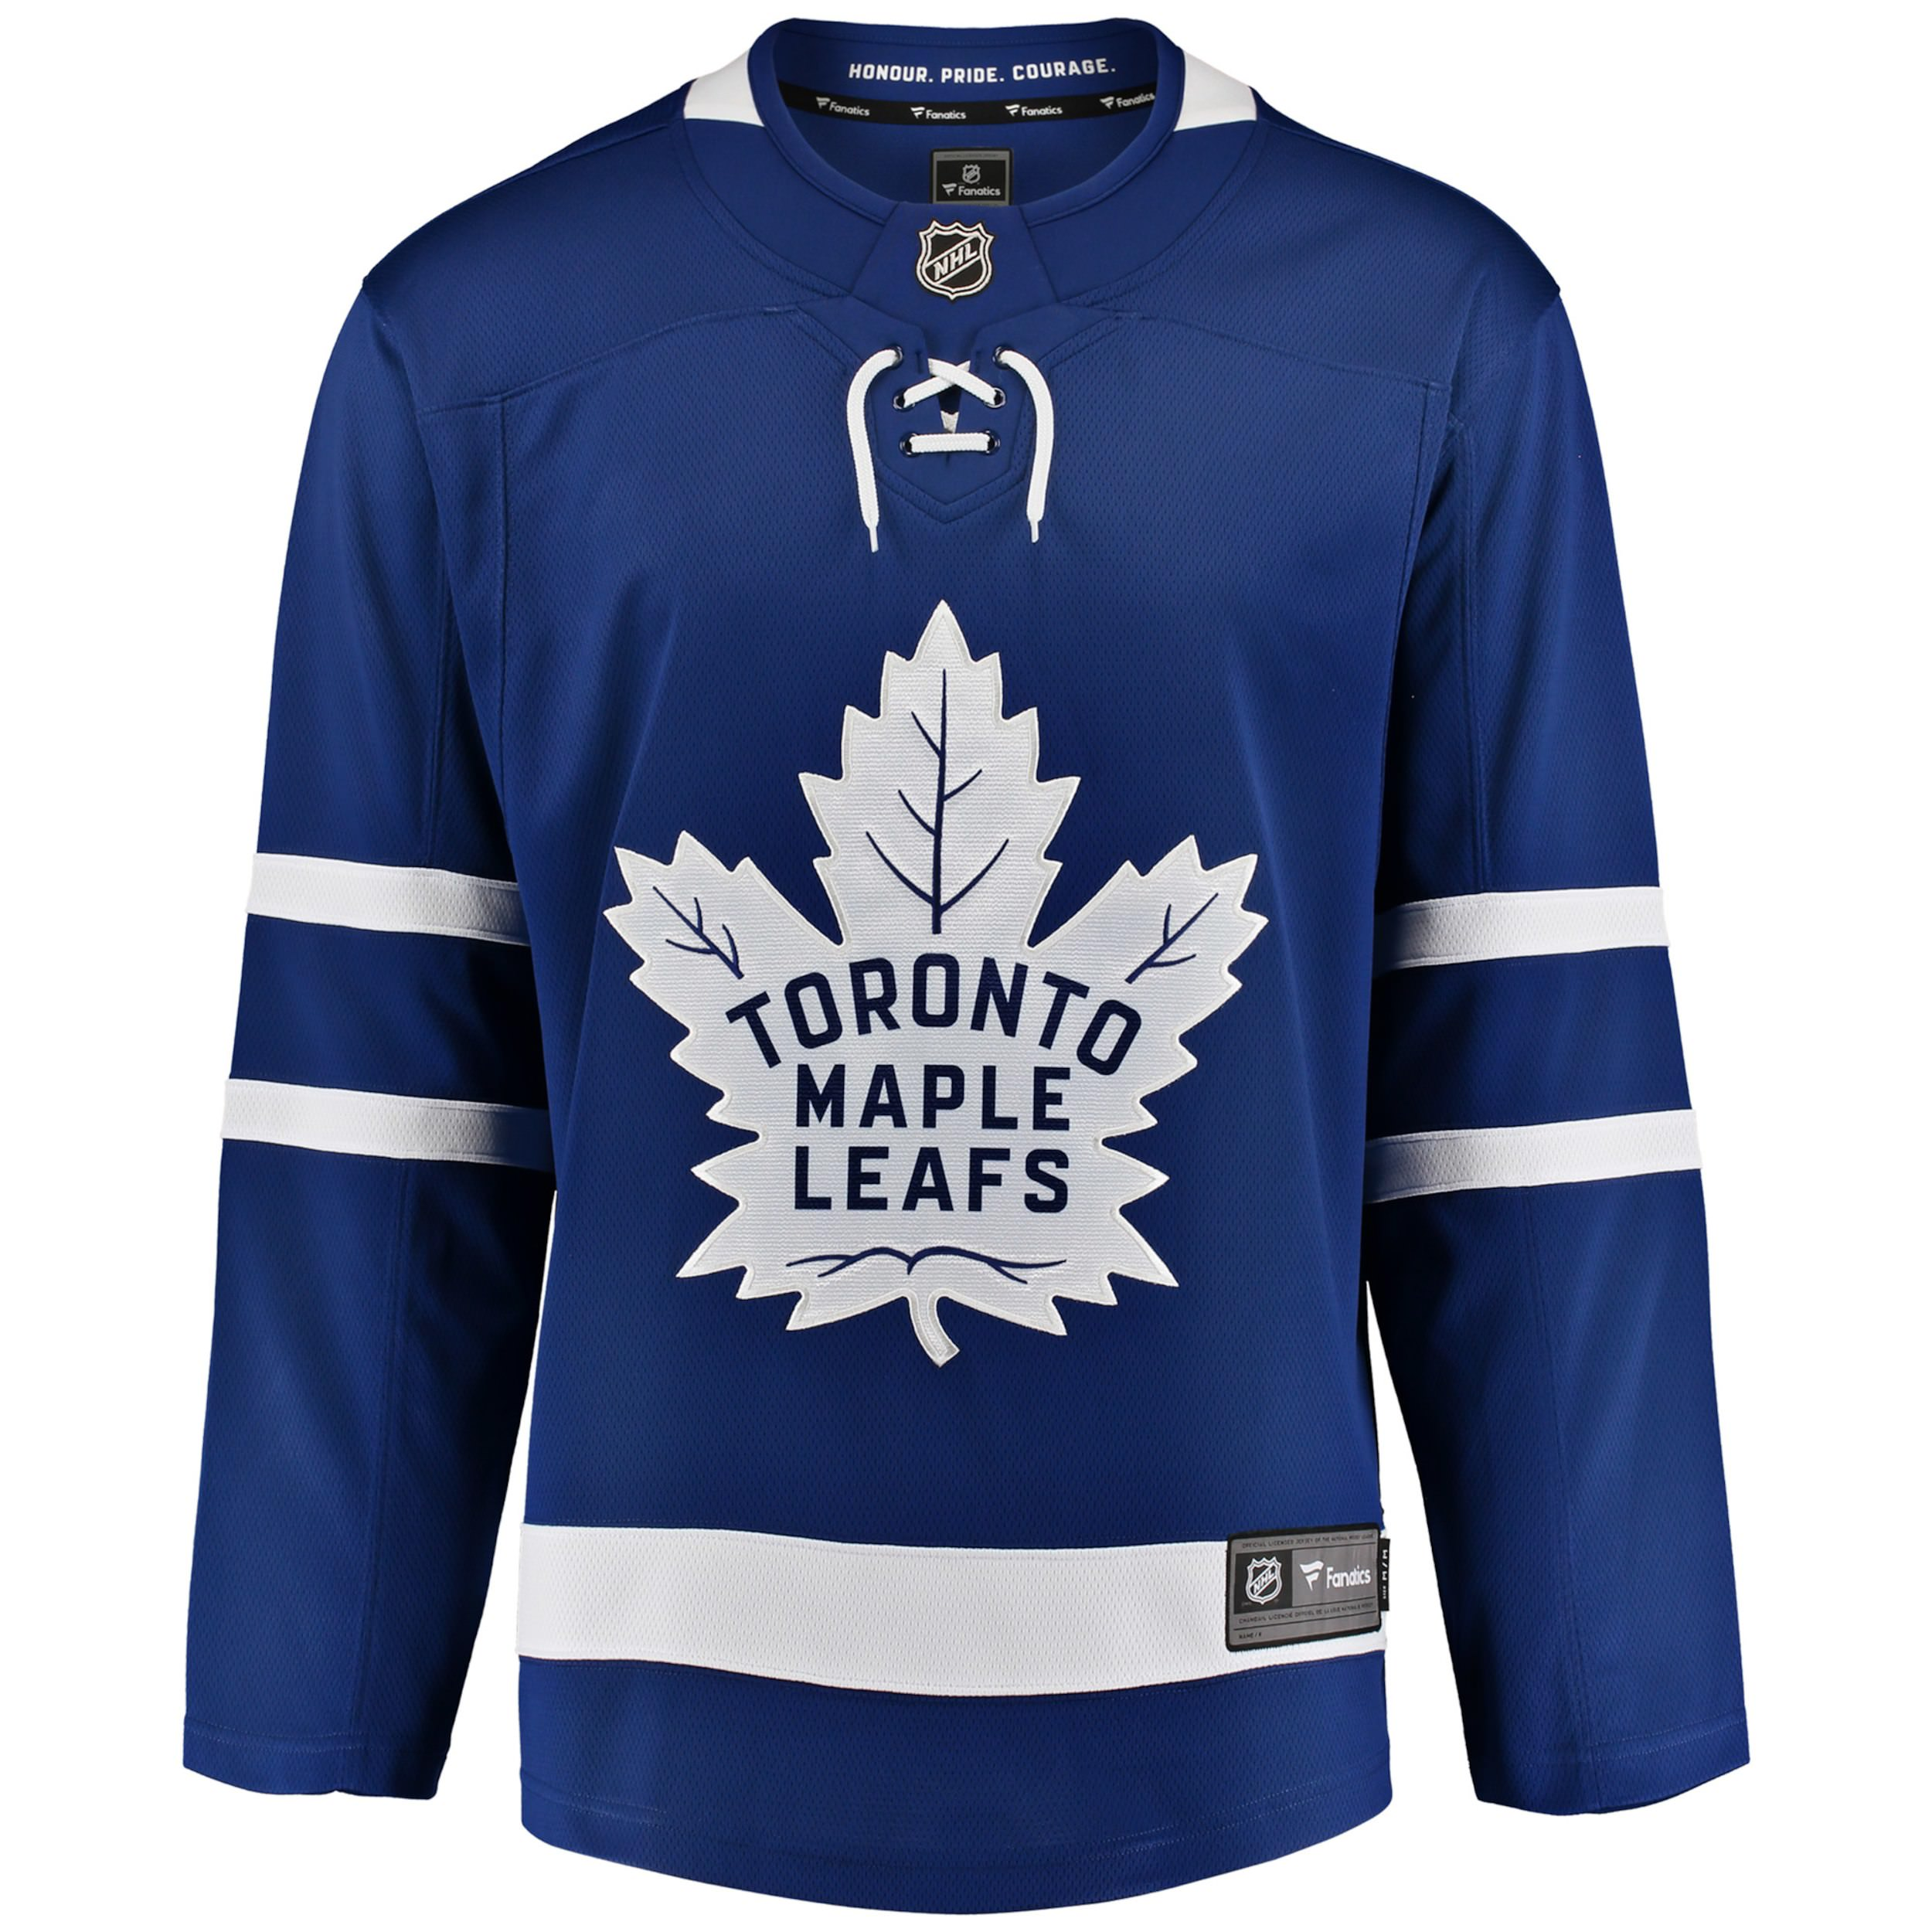 Toronto Maple Leafs NHL Fanatics Breakaway Home Jersey - image 2 of 2